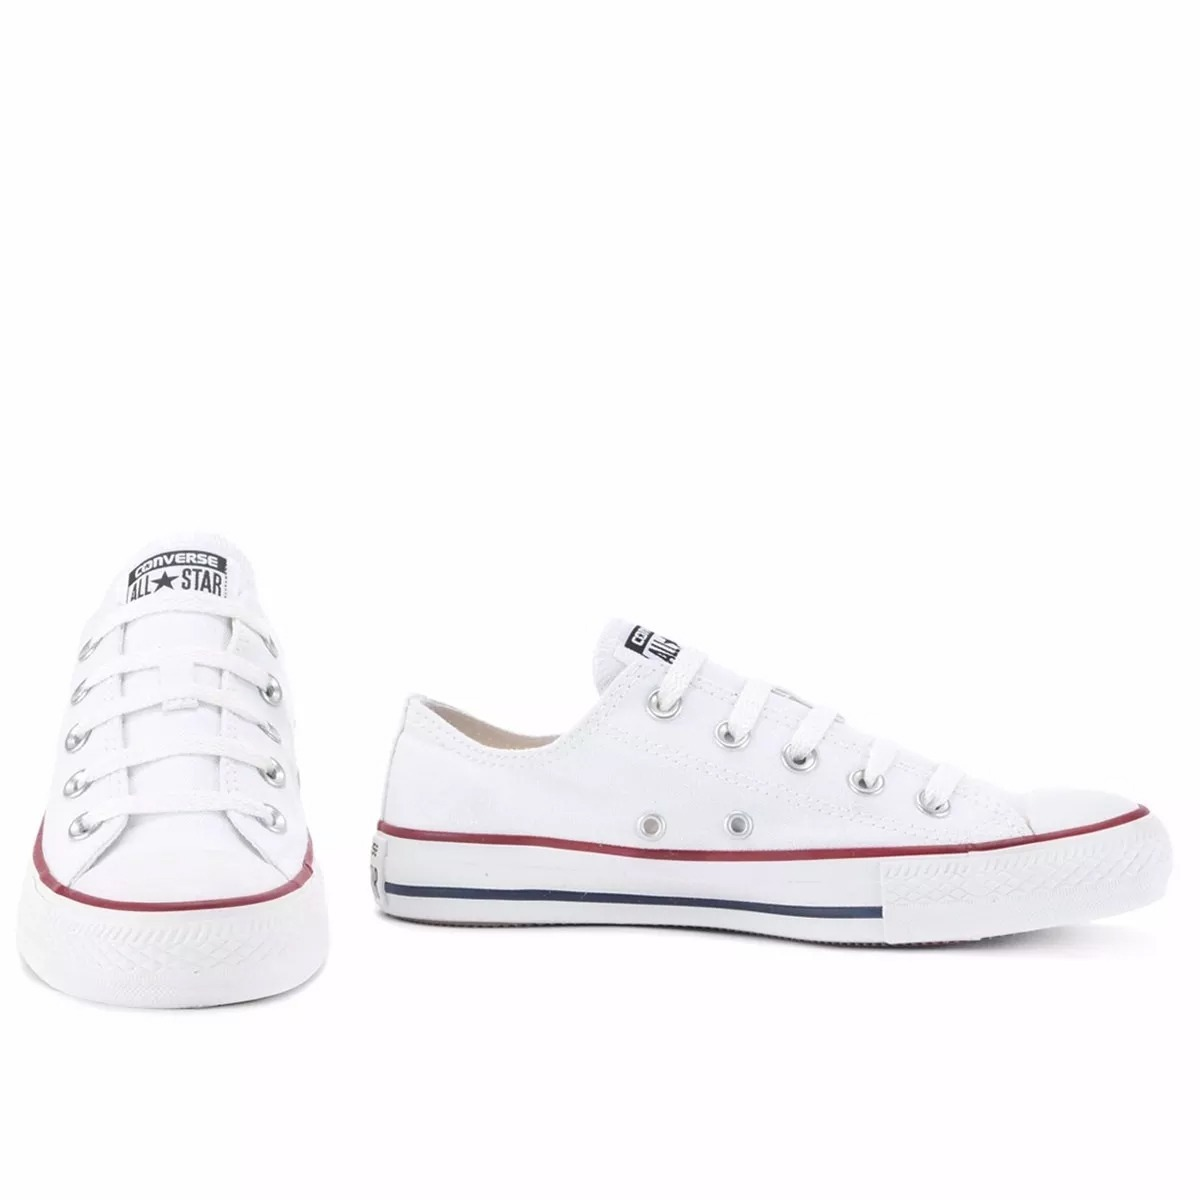 tênis converse all star ct as core ox branco - ct0001 30002. Carregando  zoom. c8f62bc6e6c5a